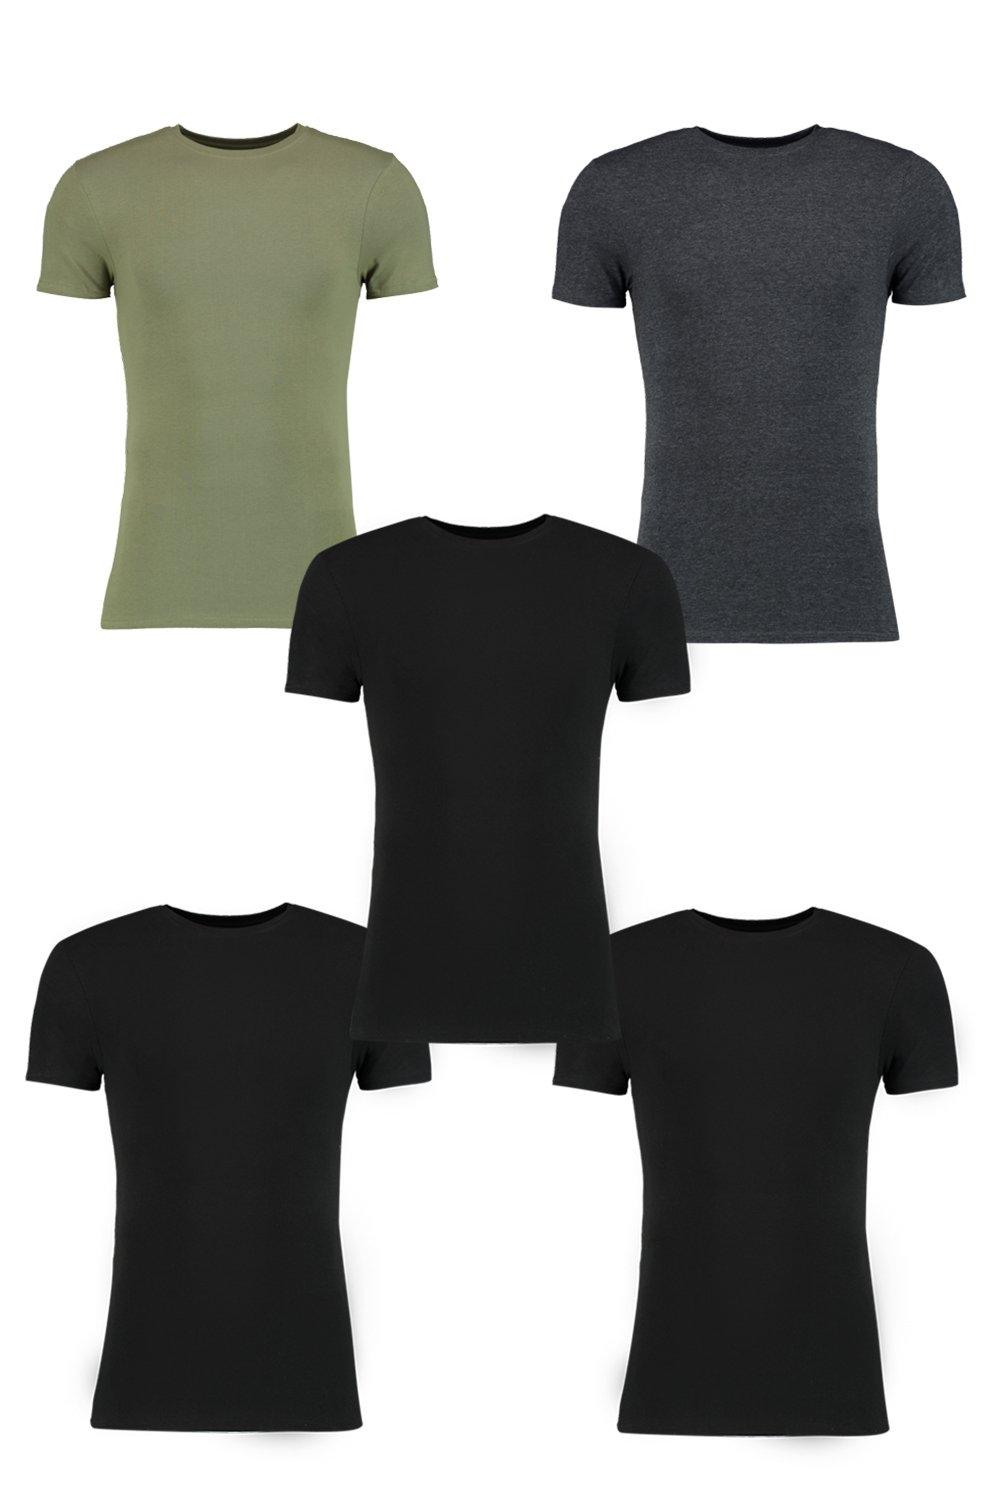 5 Pack Muscle Fit T Shirts